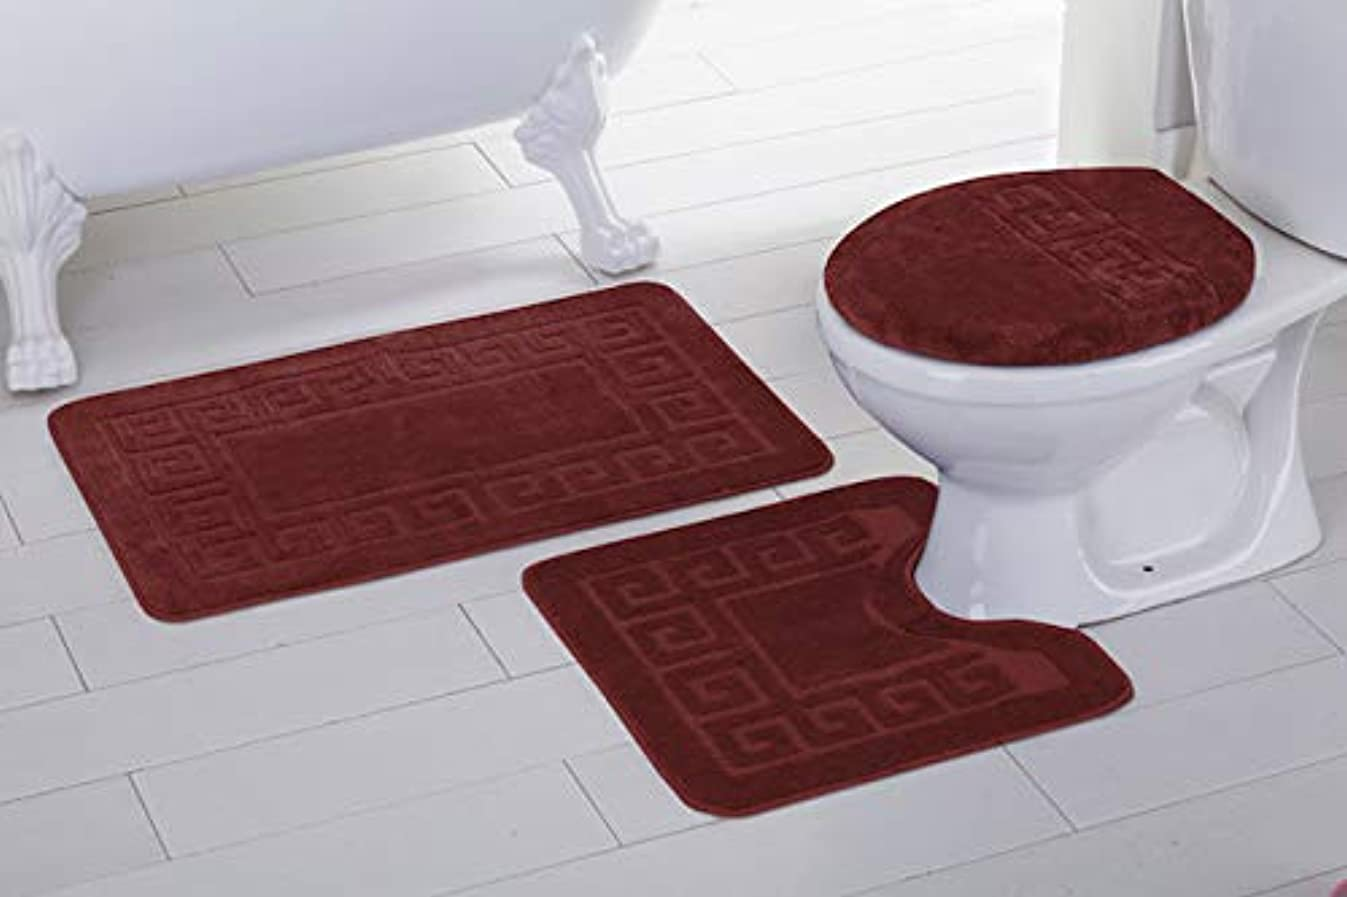 Fancy Linen 3pc Non-Slip Bath Mat Set with Chain Pattern Solid Burgundy Bathroom U-Shaped Contour Rug, Mat and Toilet Lid Cover New